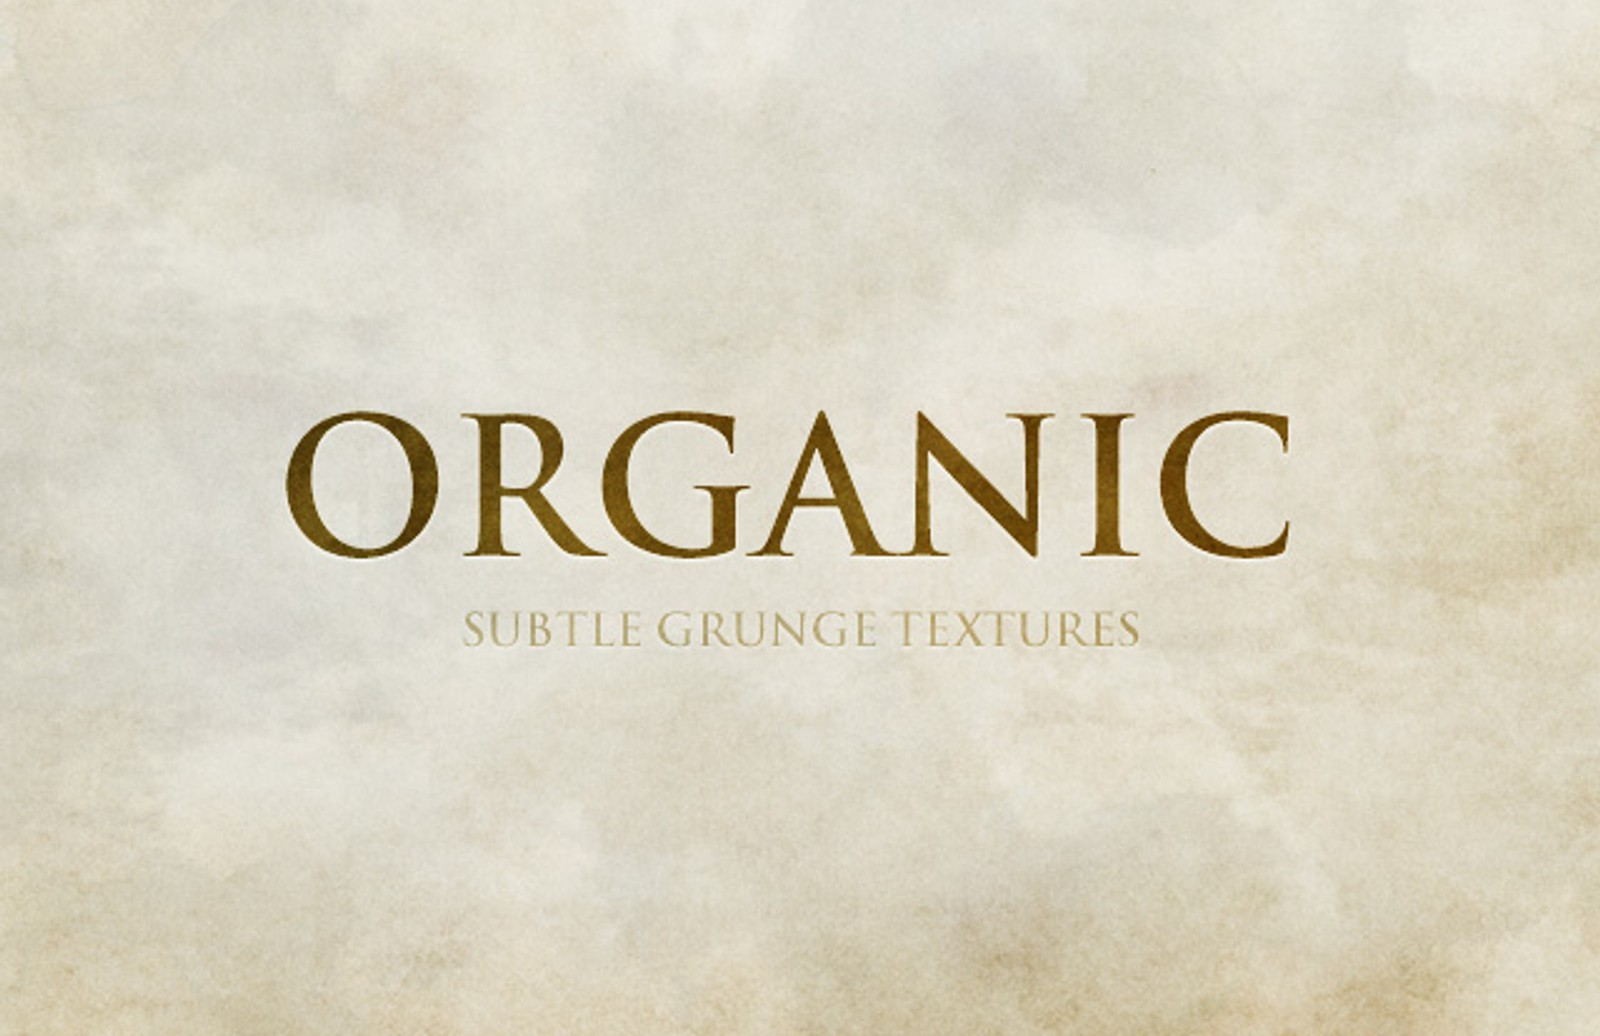 Organic  Subtle  Grunge  Textures  Preview1